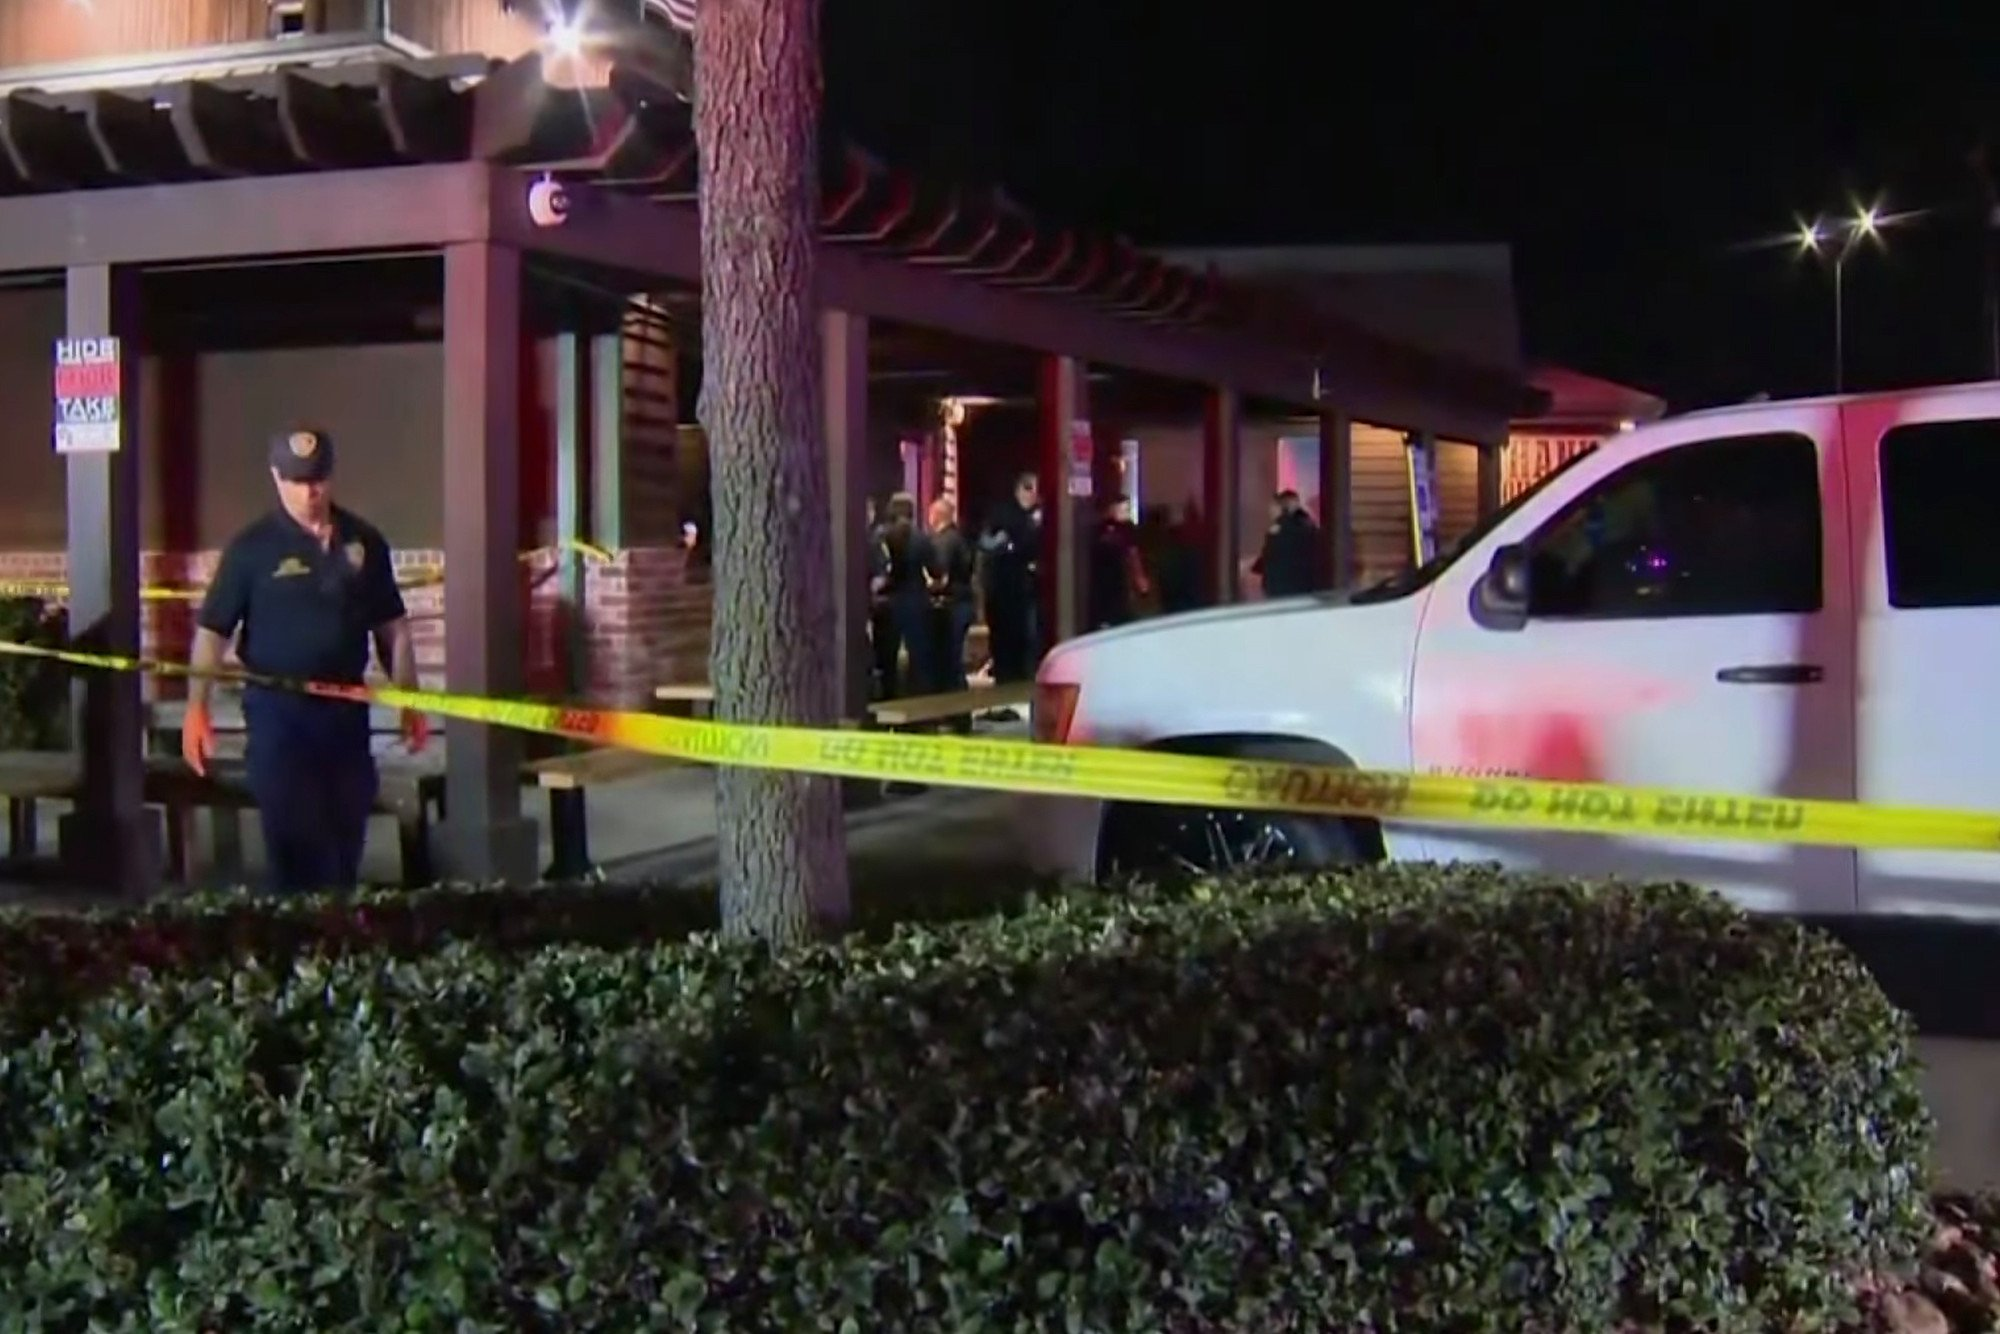 Masked gunman shoots child, 4 others outside steakhouse: cops